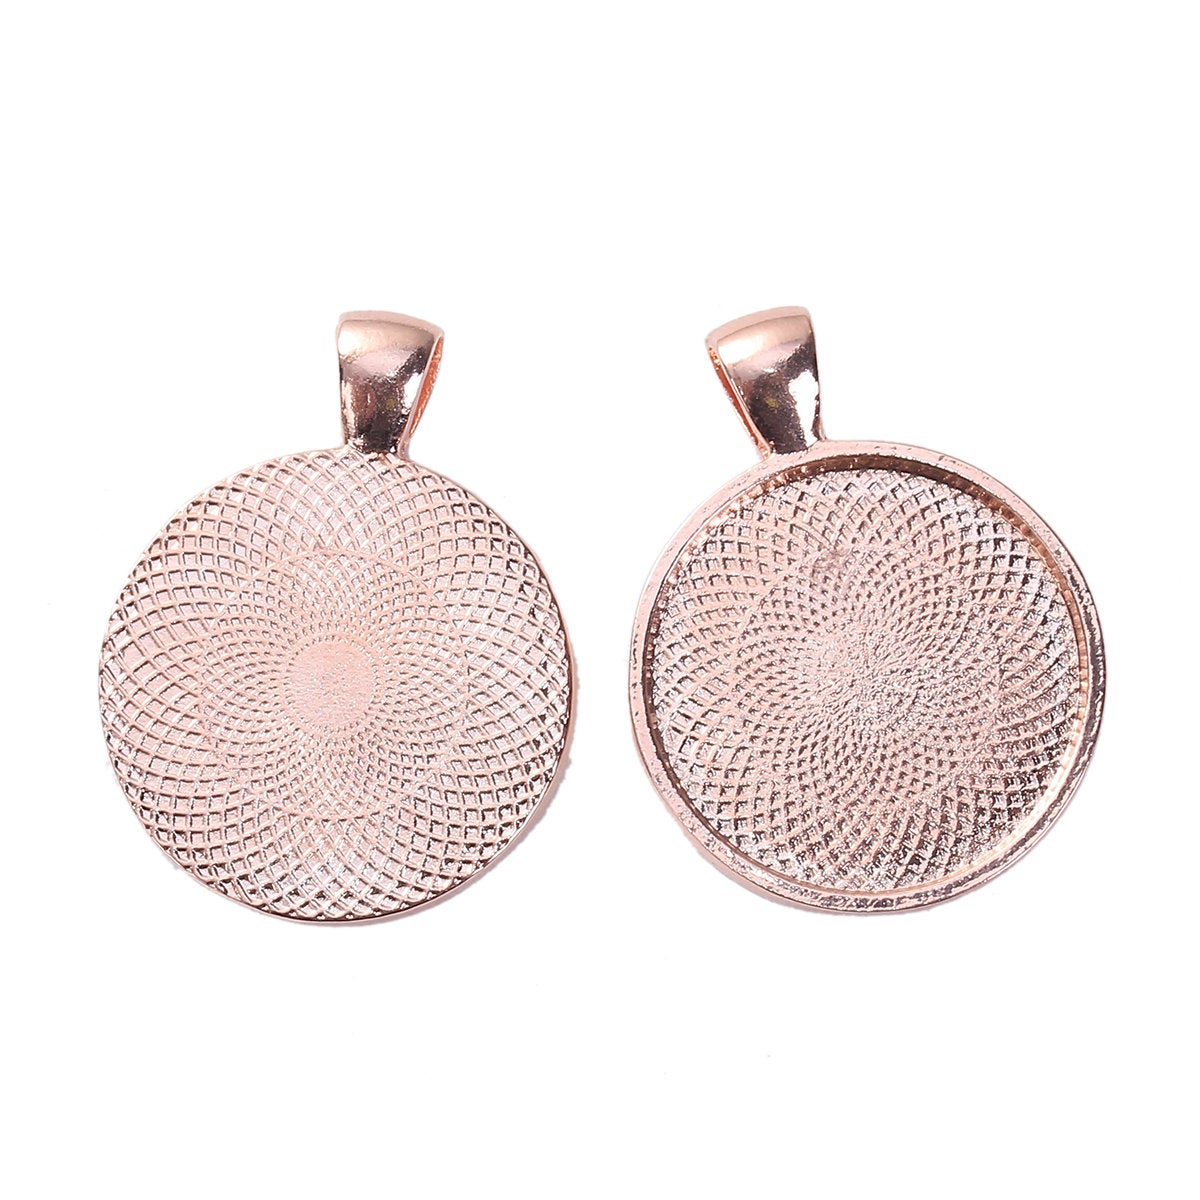 10 Rose Gold Cabochon Bezel Pendant Trays 25mm - Round 1 inch